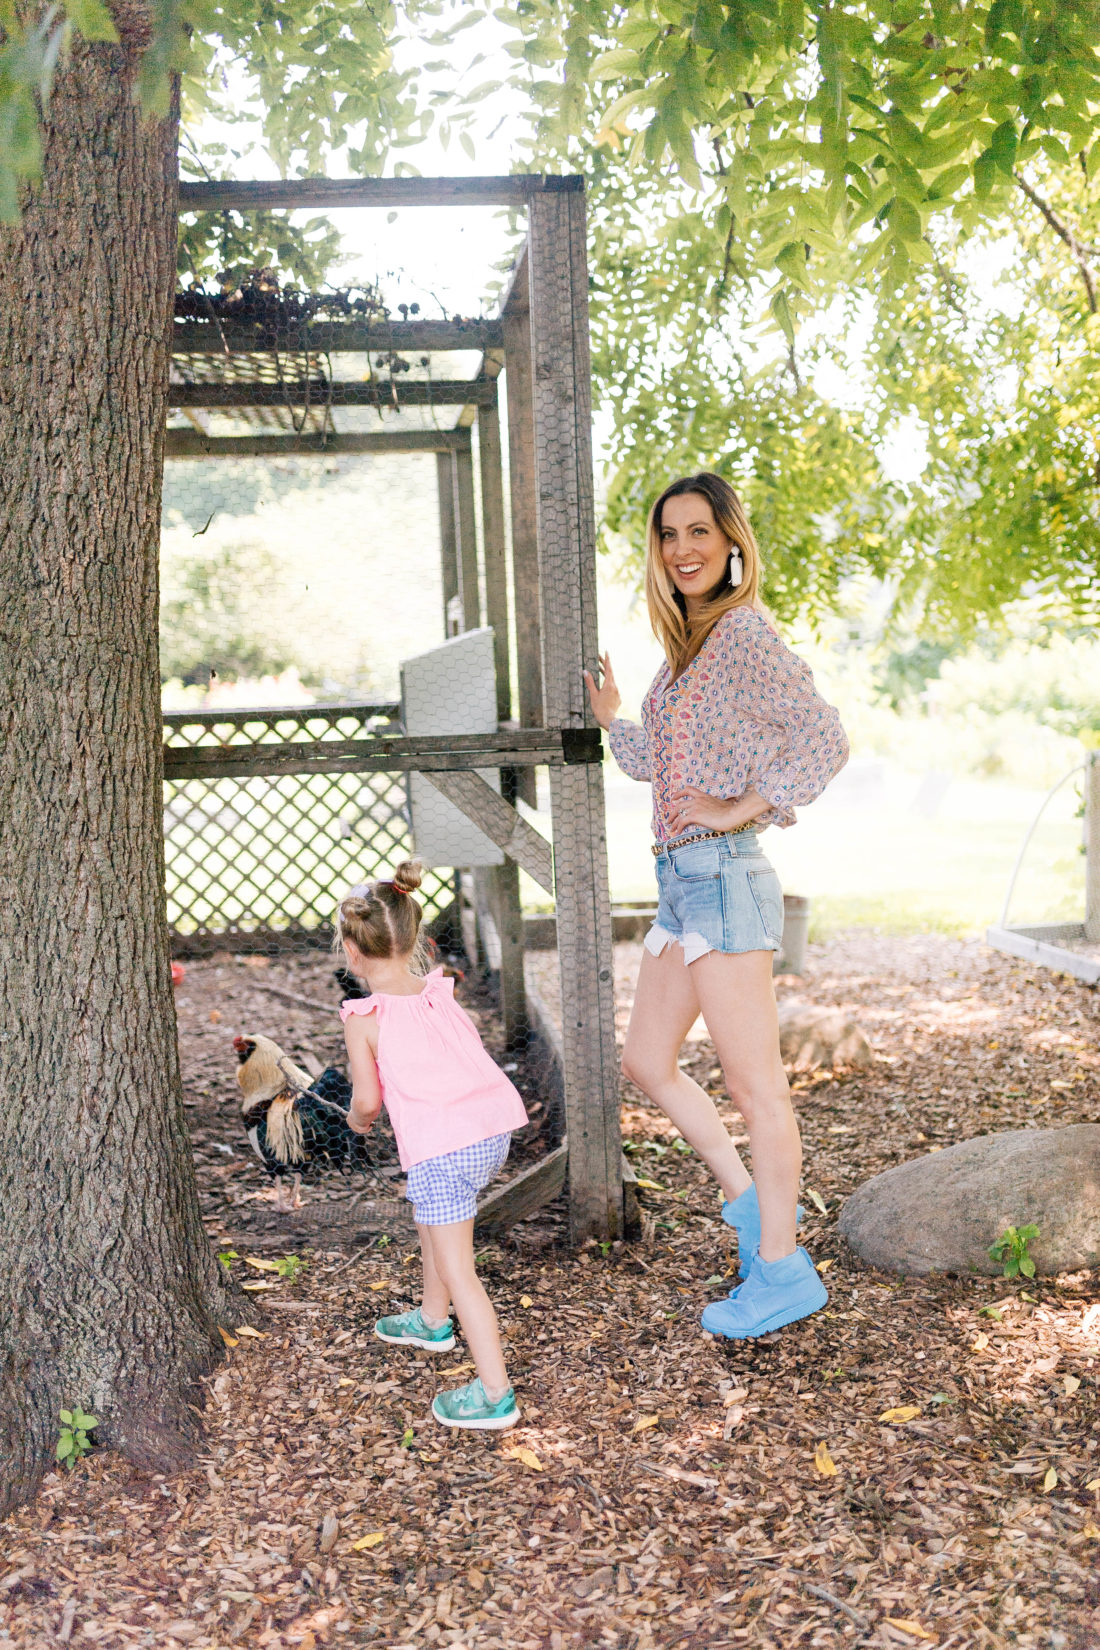 Eva Amurri Martino stands with Marlowe Martino near the chicken coop at a local Connecticut farm